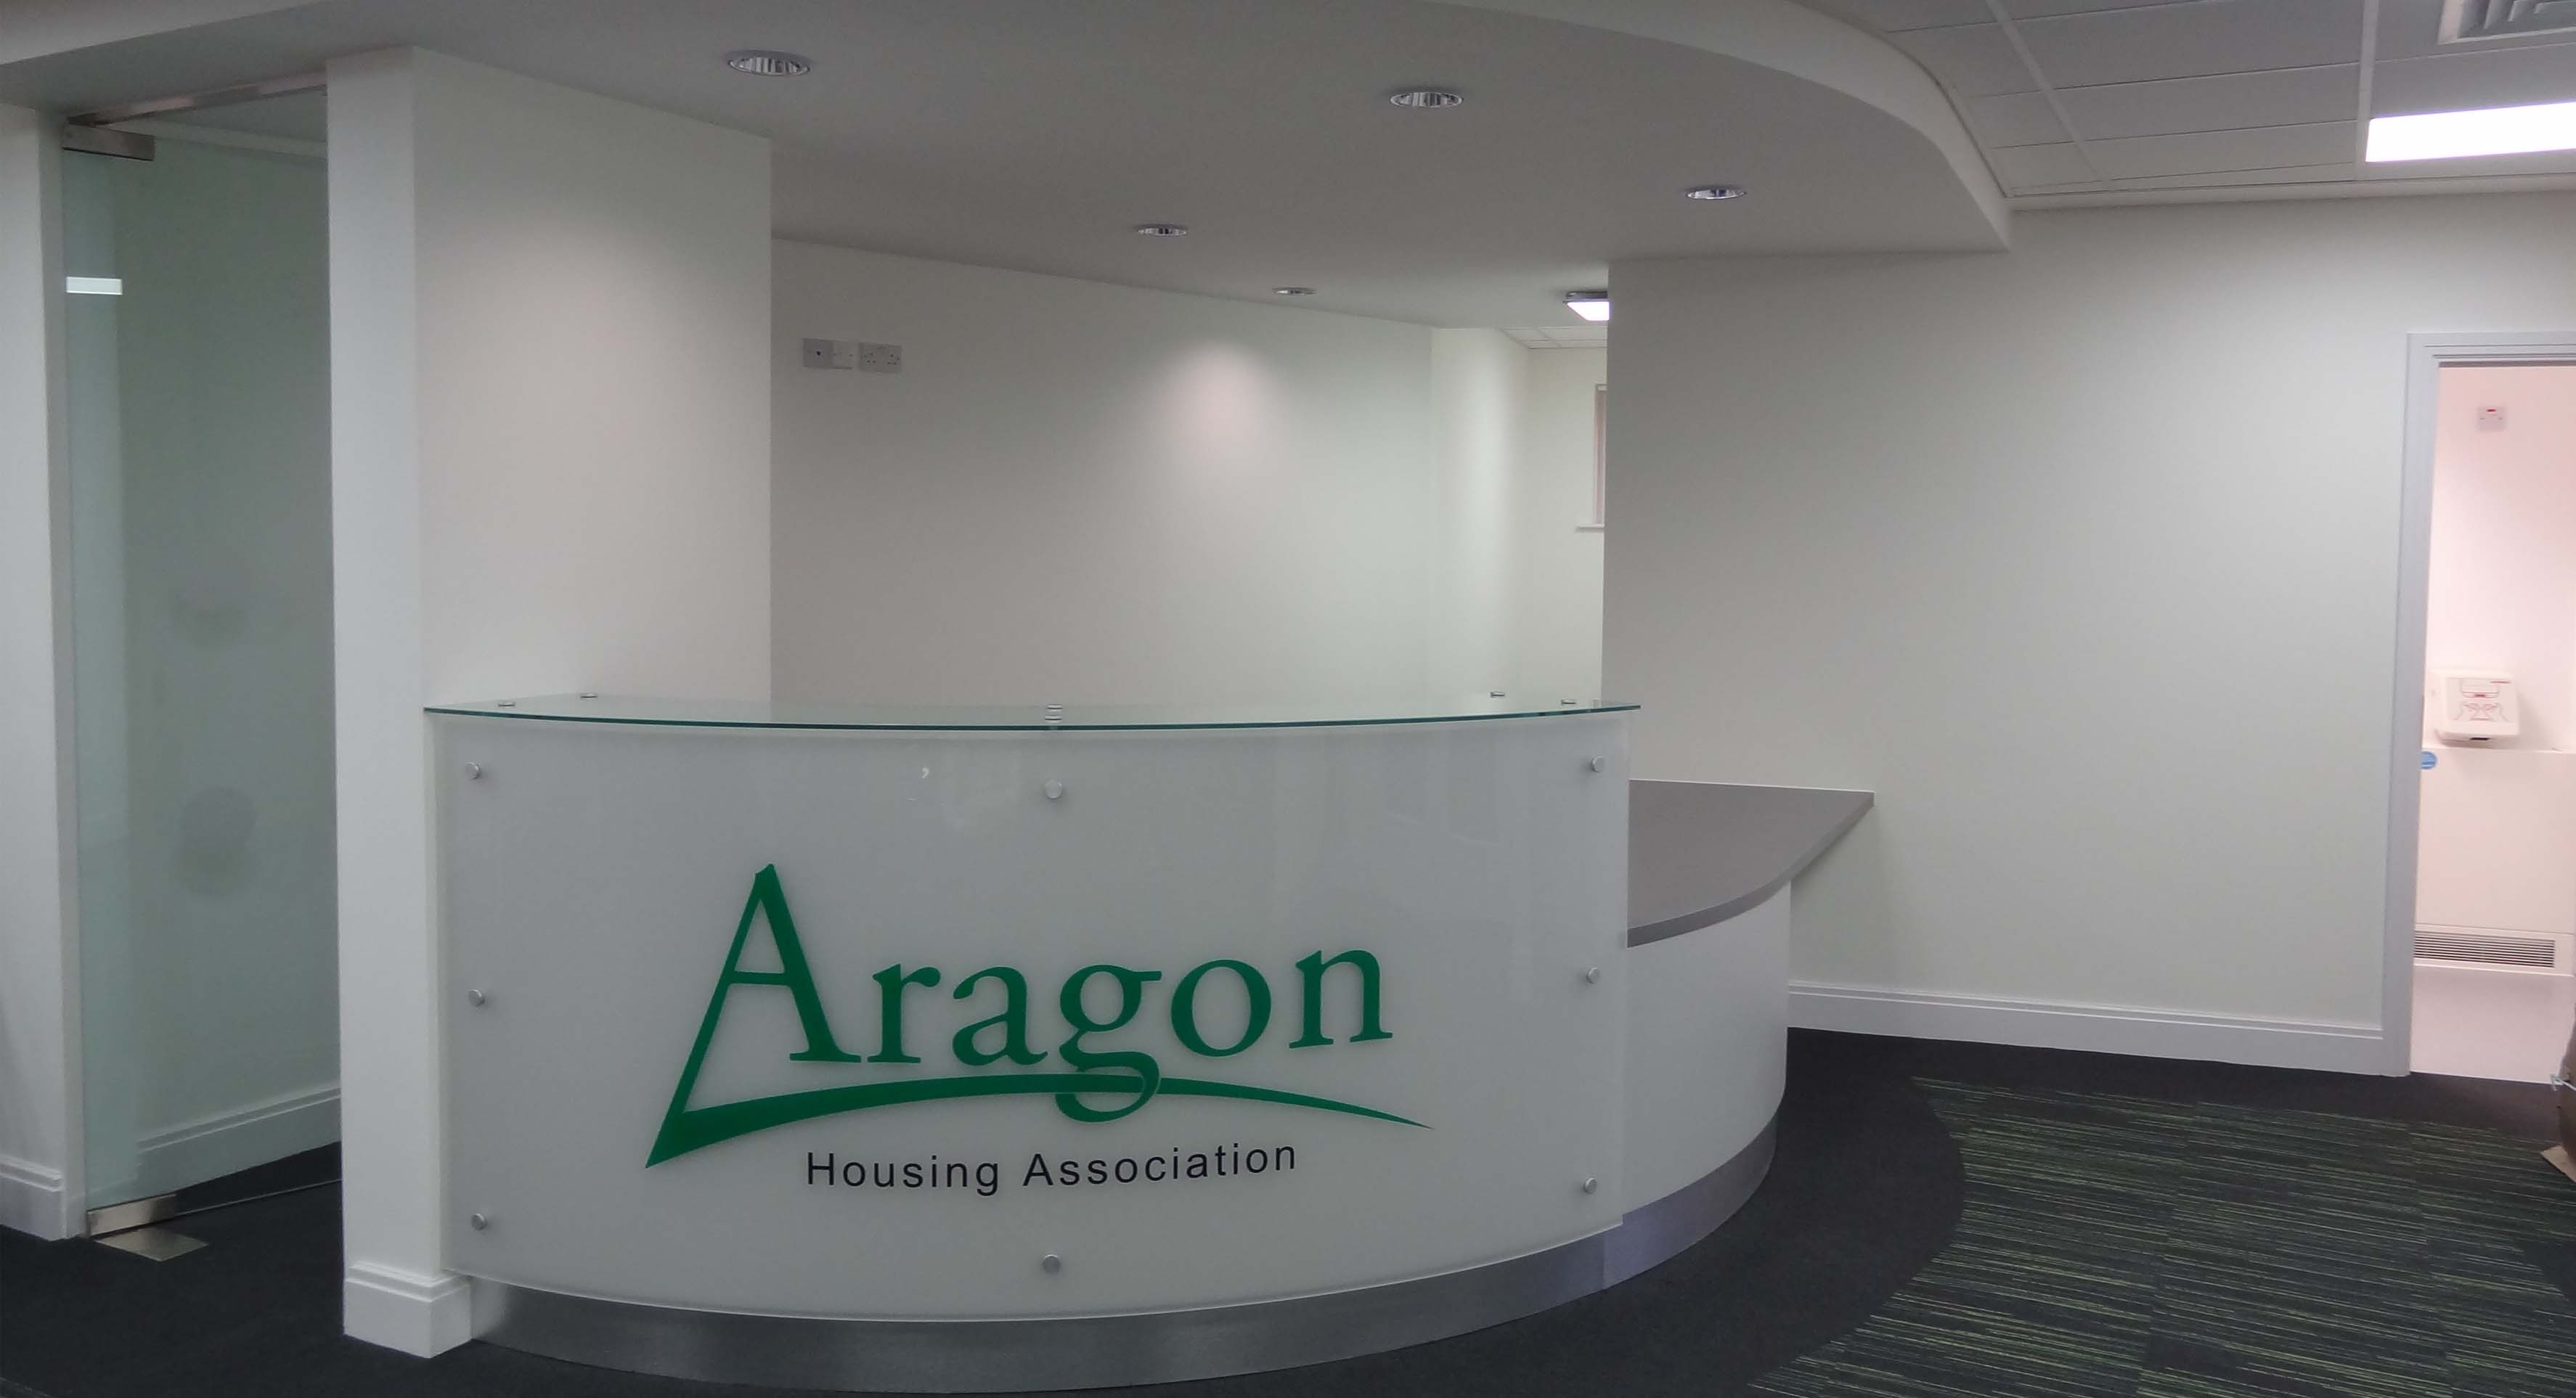 Aragon Housing Association